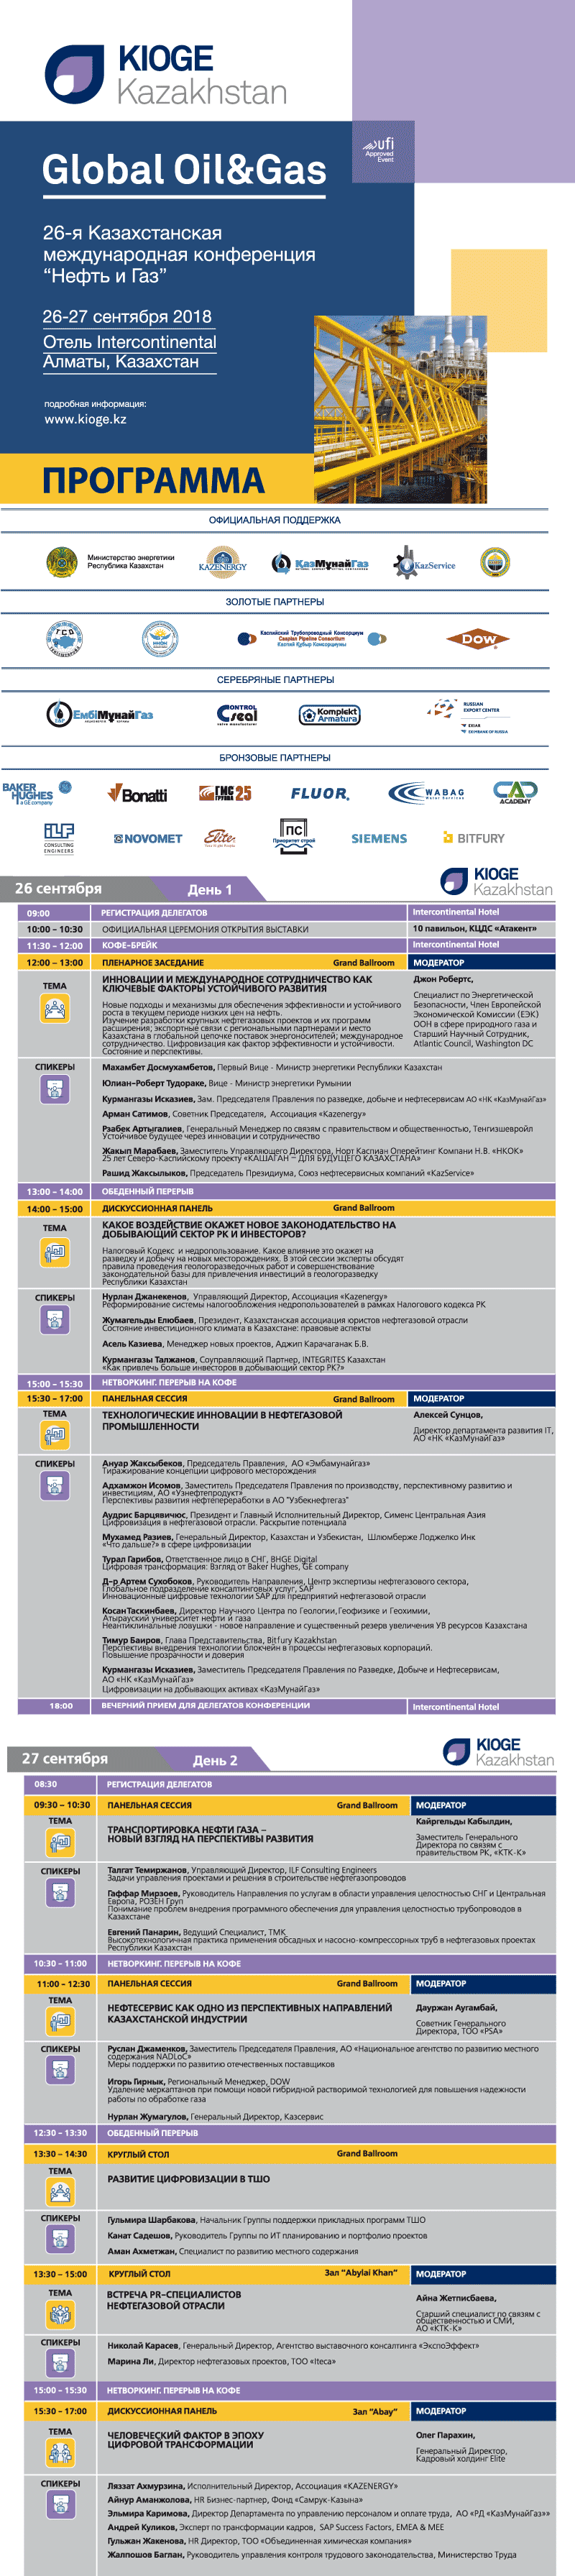 KIOGE18 Conference programme rus 26.09.2018